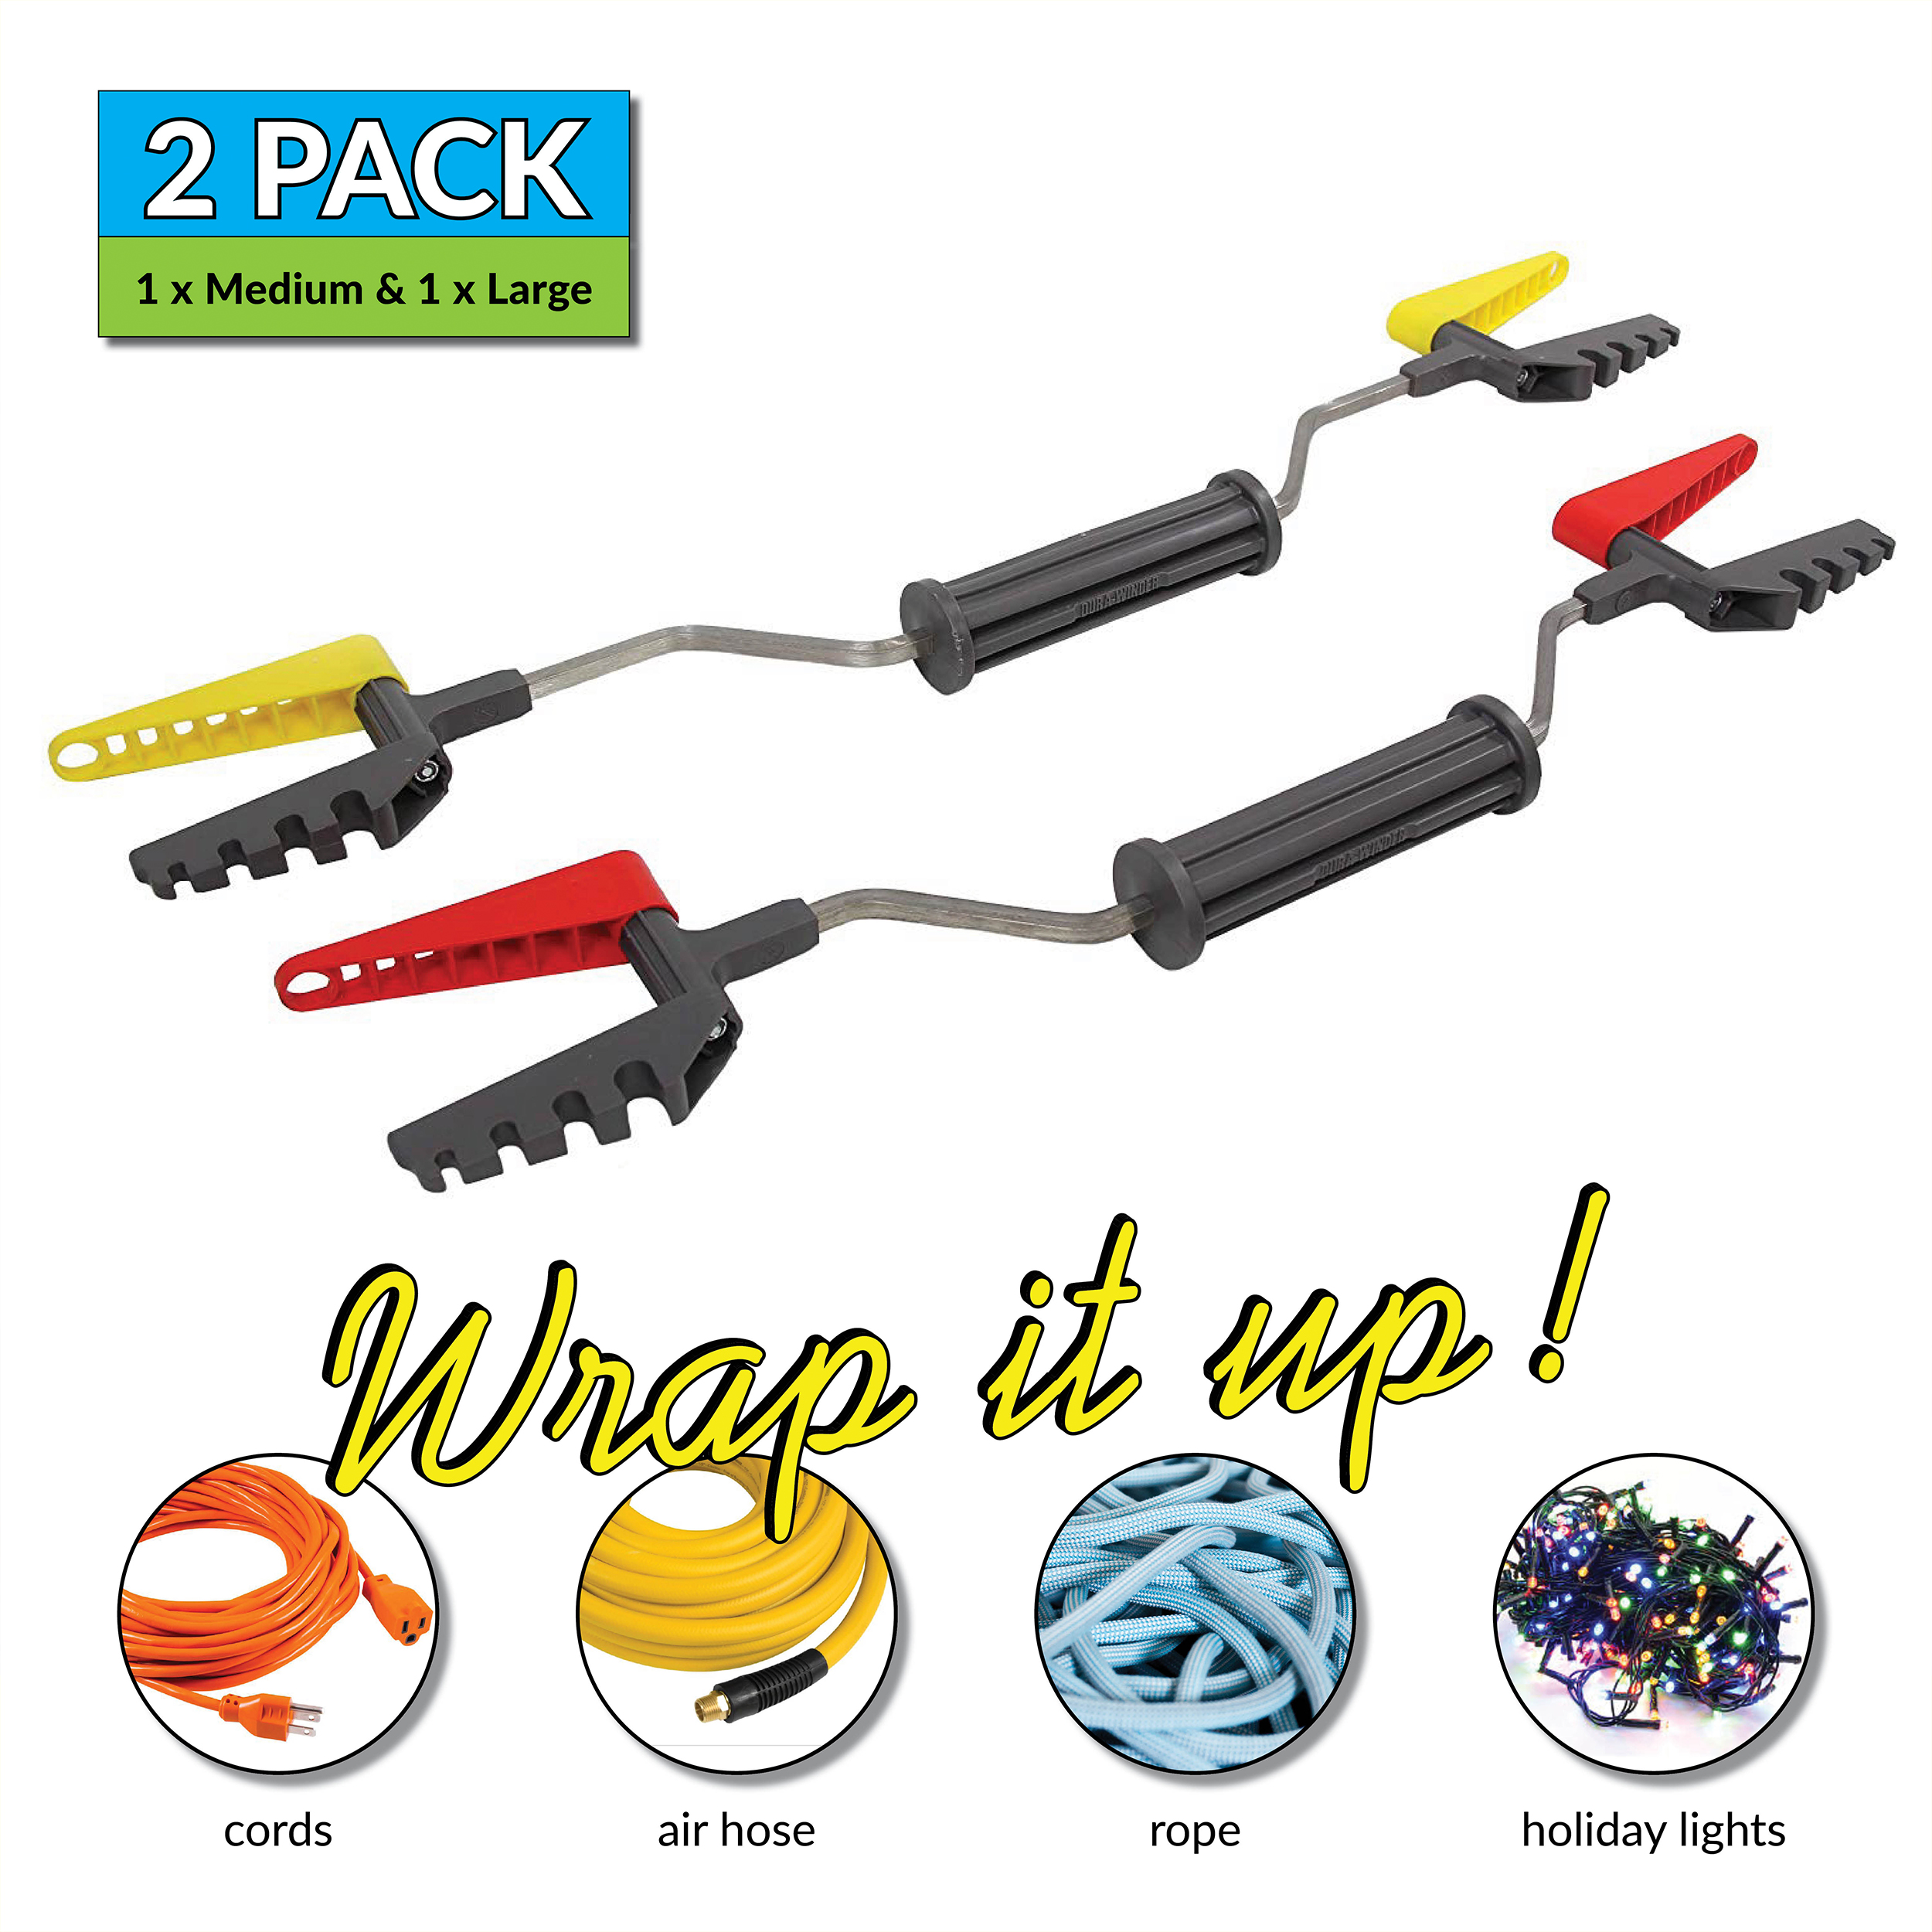 Dura-Winder Combo - 2 Pack